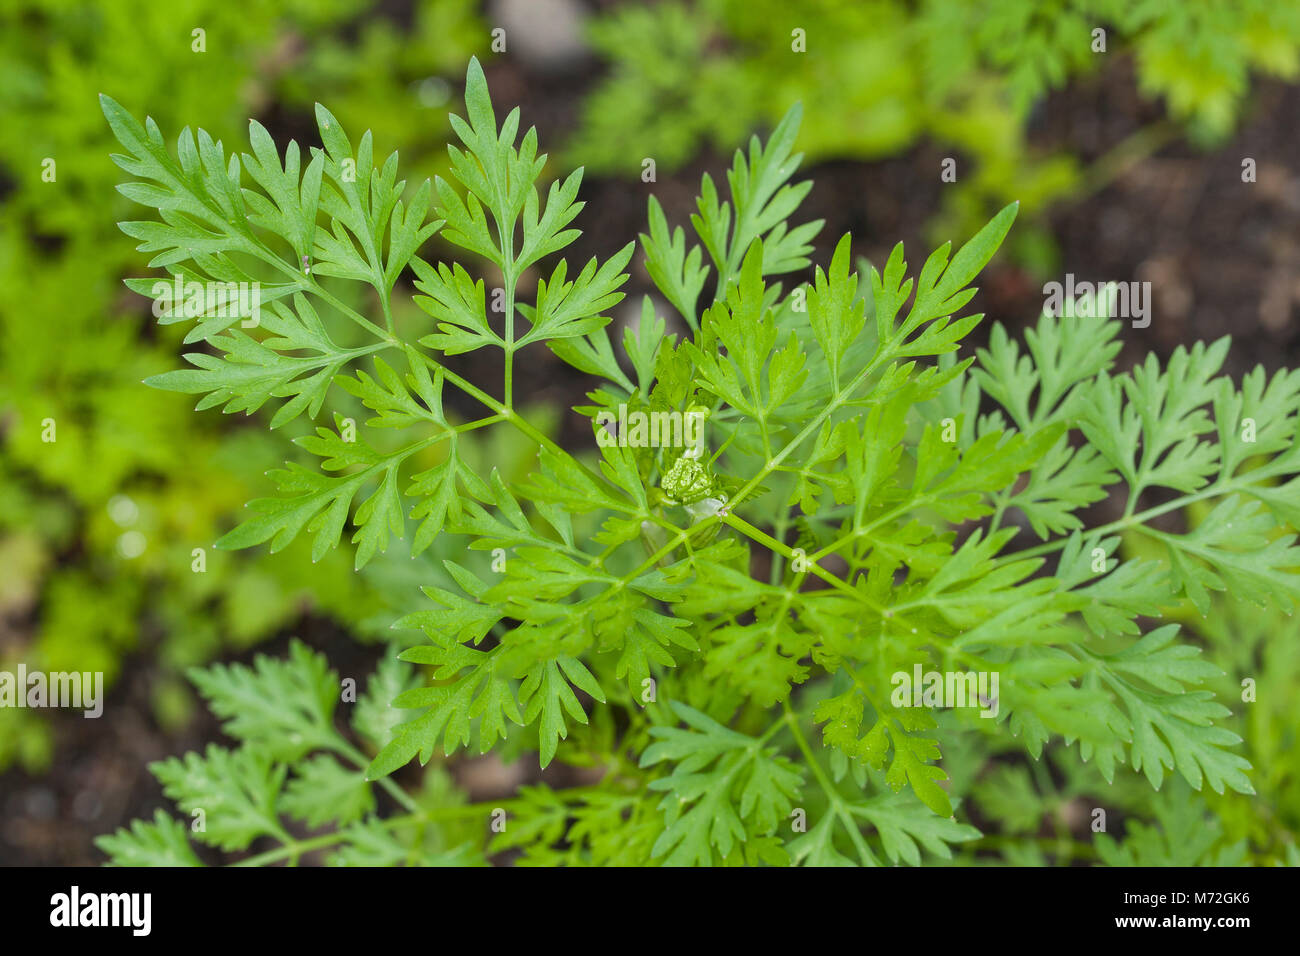 Petersilie Blüte Hundspetersilie, Hunds-petersilie, Blatt, Blätter Vor Der Blüte, Aethusa Cynapium, Fool's Parsley, Fool's Cicely, Poison Parsley, Dog Poison Stock Photo - Alamy